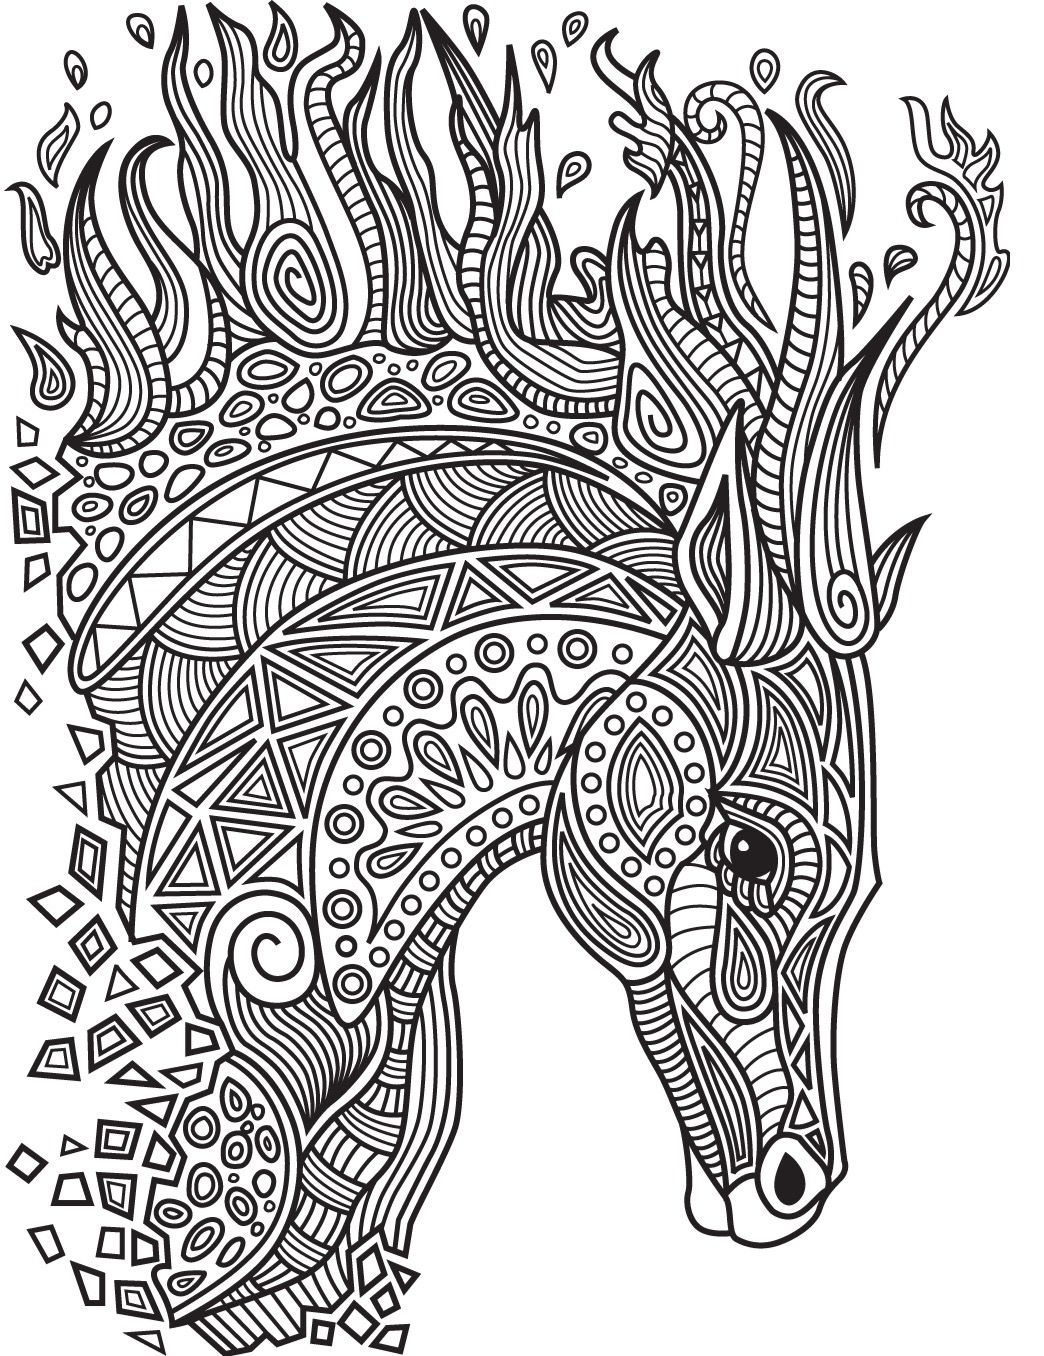 Horses | Colorish: coloring book app for adults mandala relax by ...